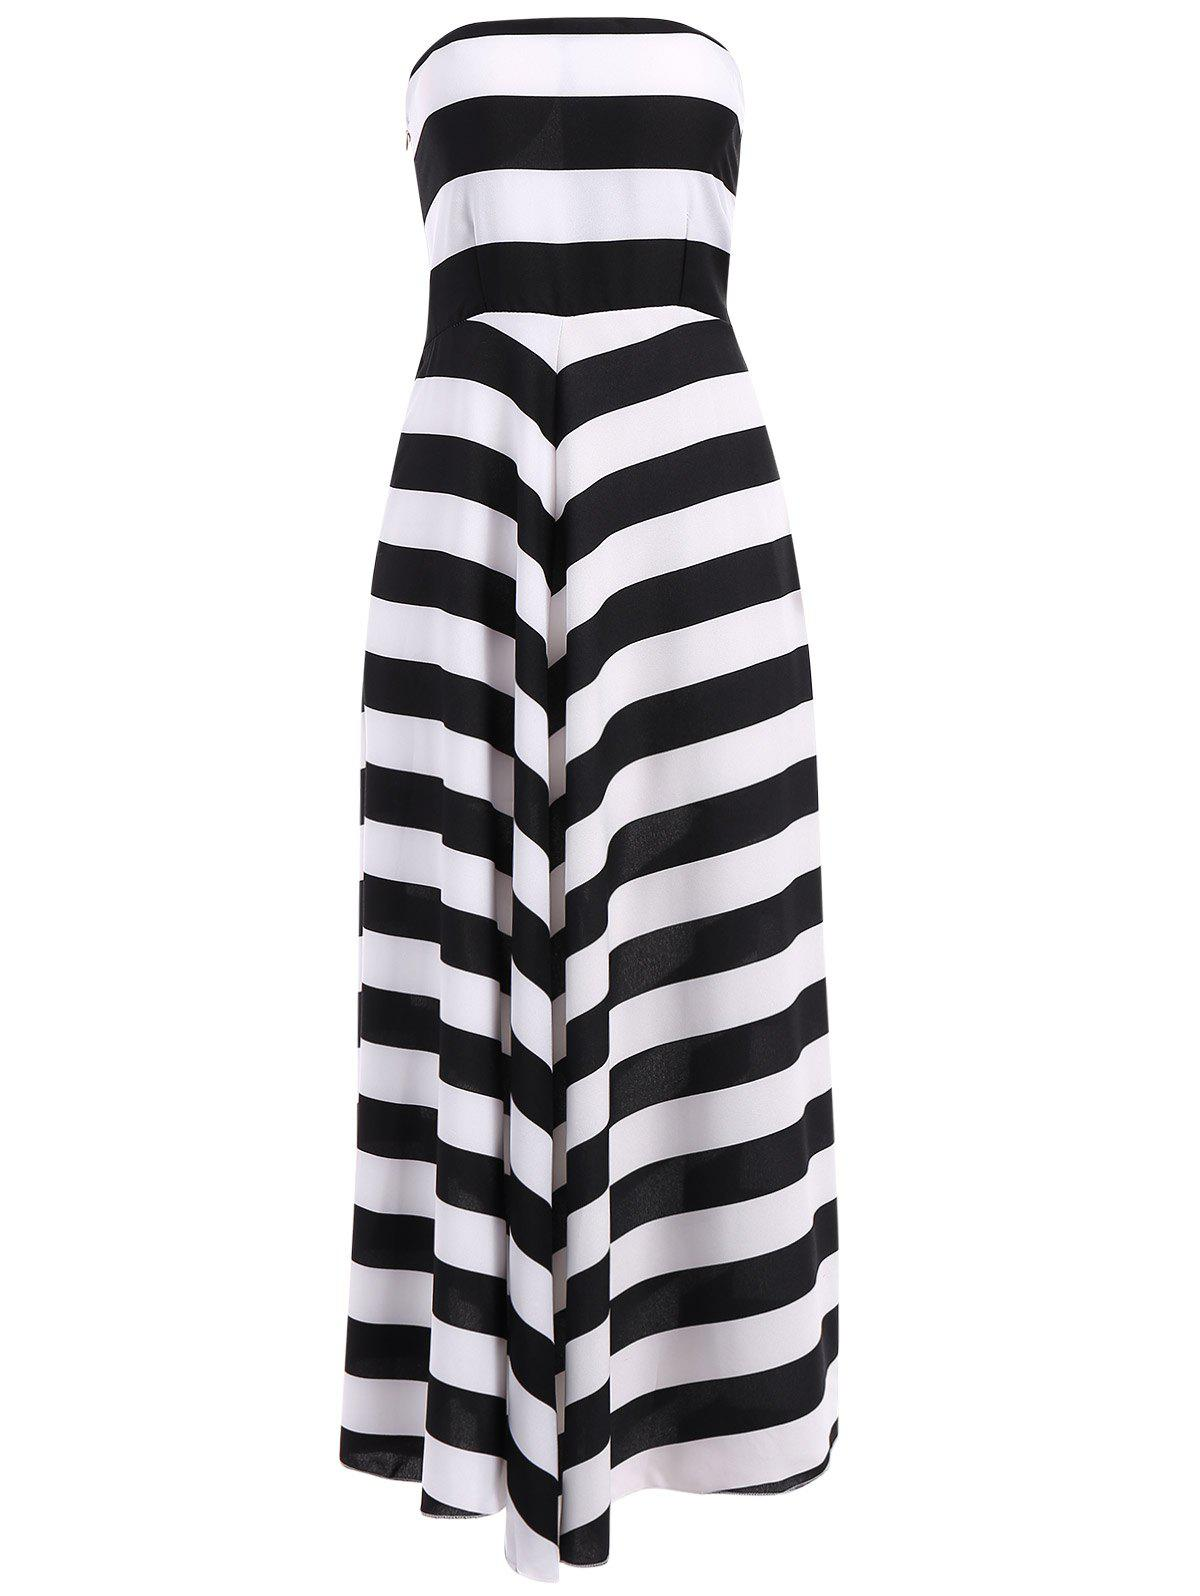 Trendy Nipped Waist Color Block Striped Strapless Maxi Dress - WHITE/BLACK S